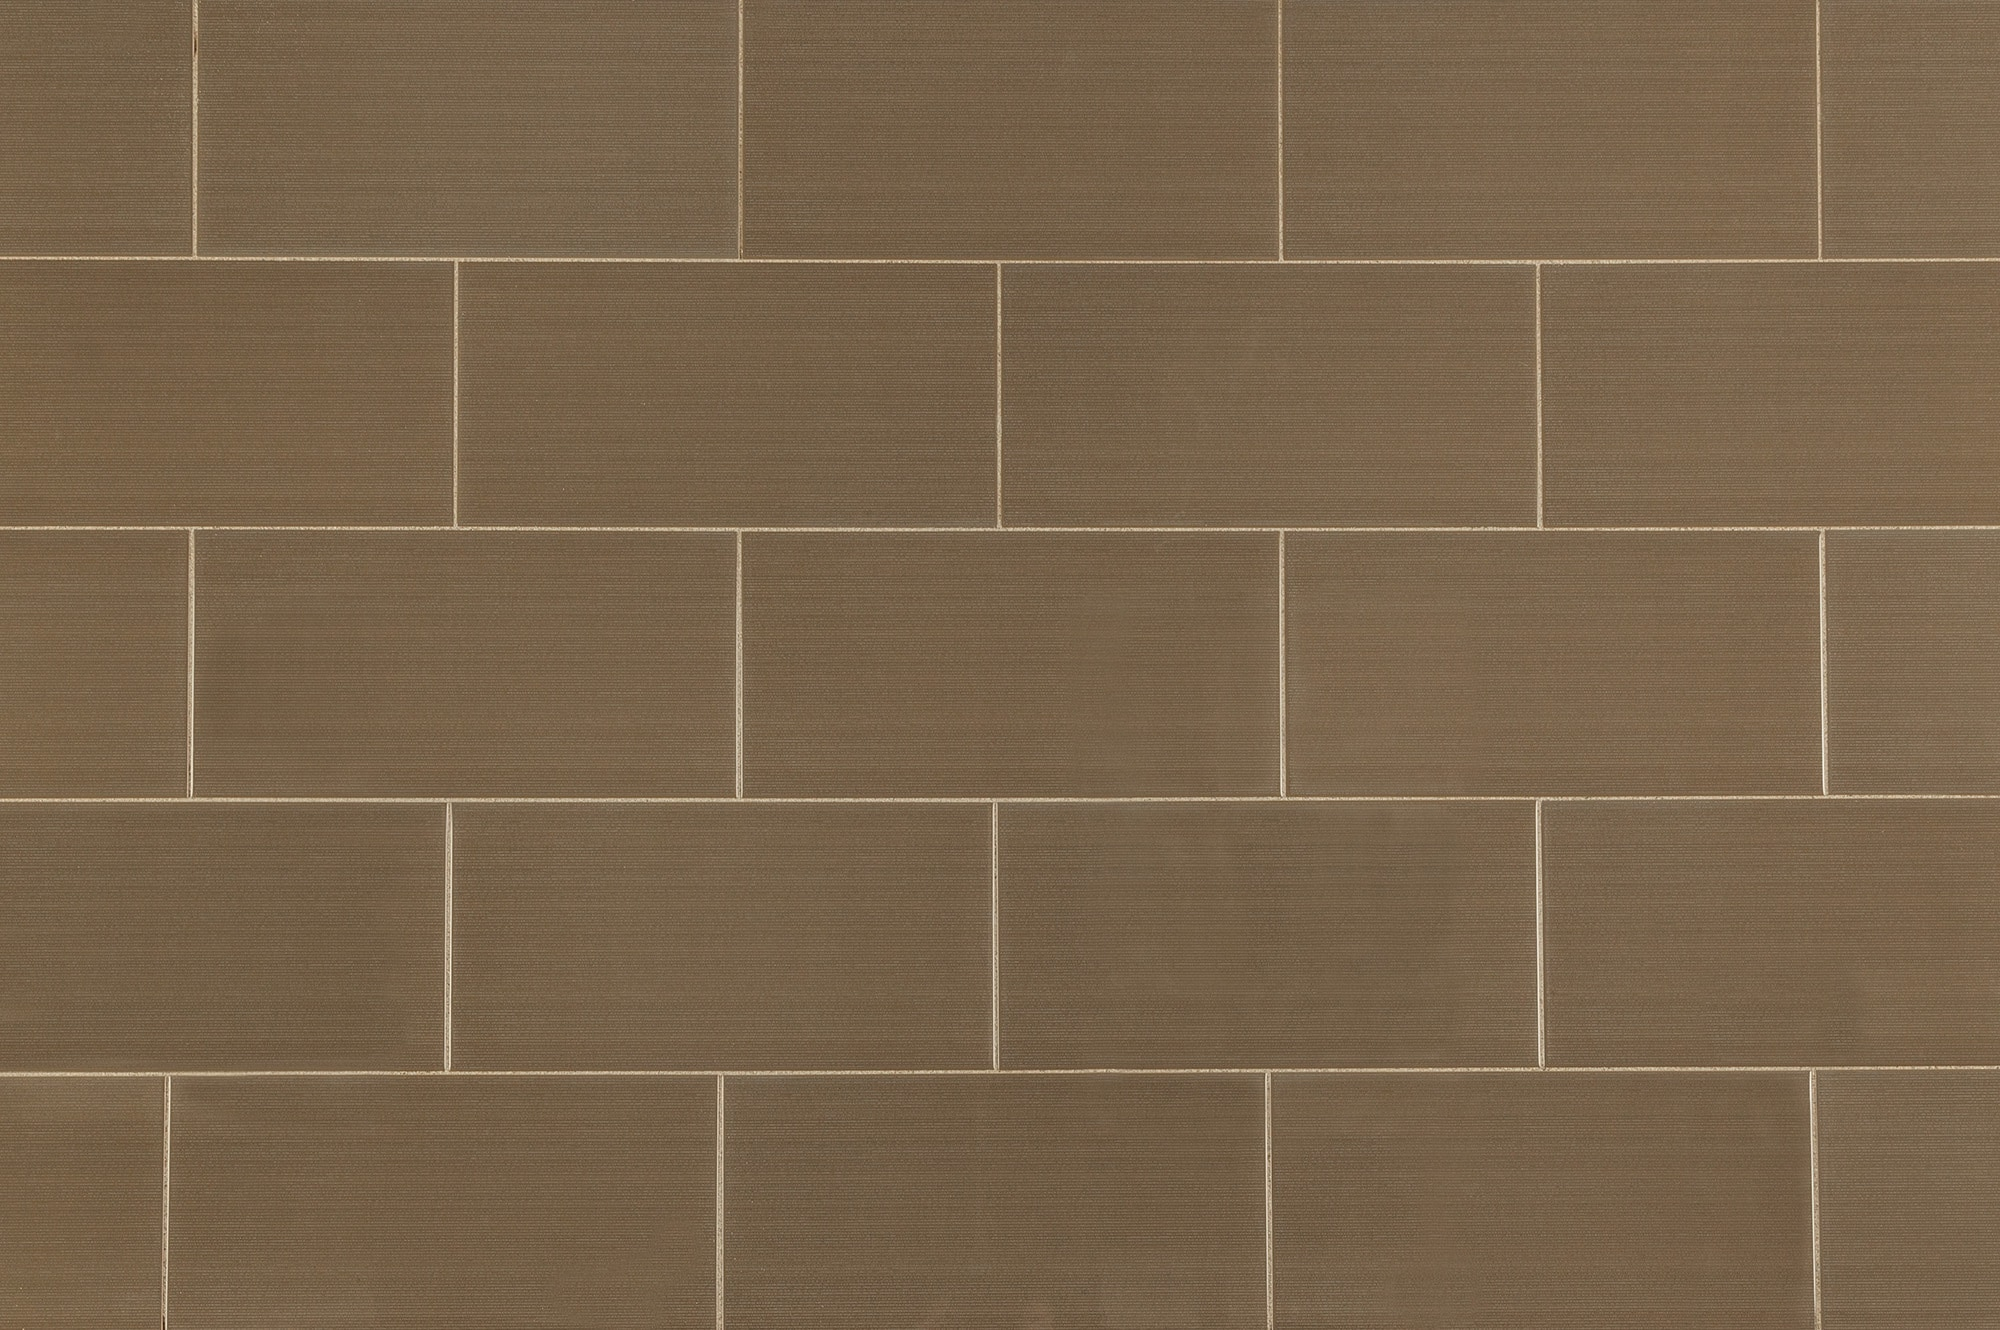 Piastrella ceramic wall tile milano collection brown - How to install ceramic tile on wall ...